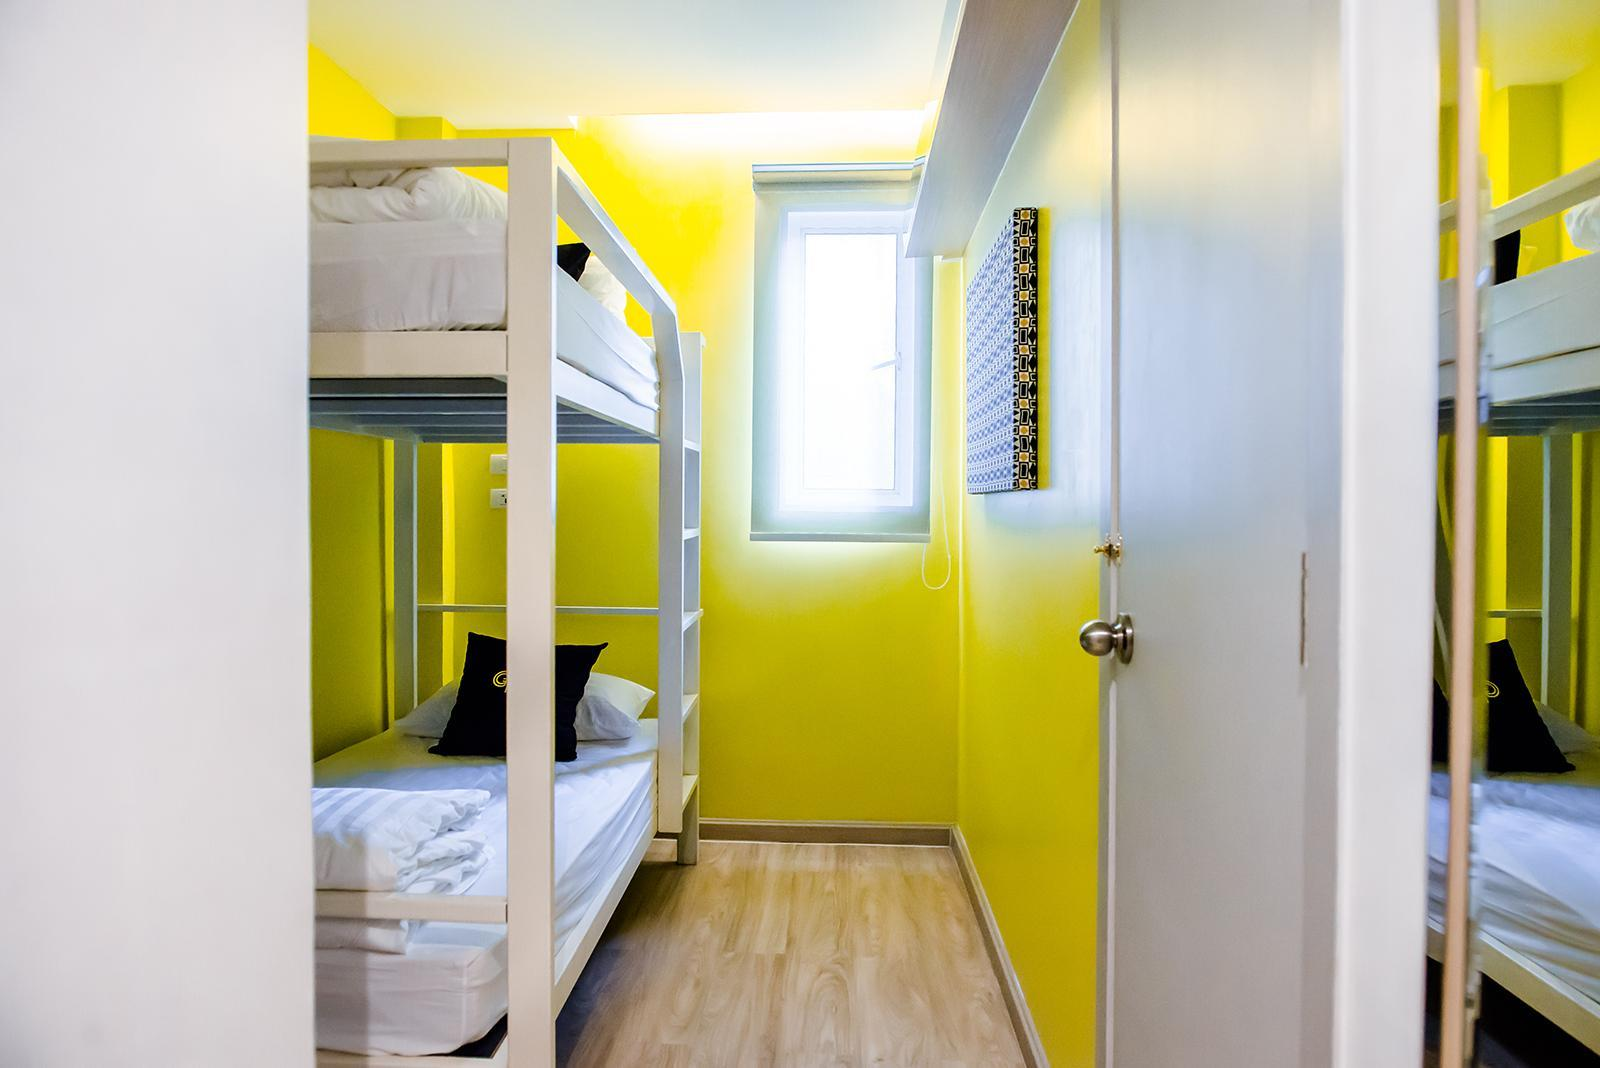 Exclusive Room with Bunk Bed